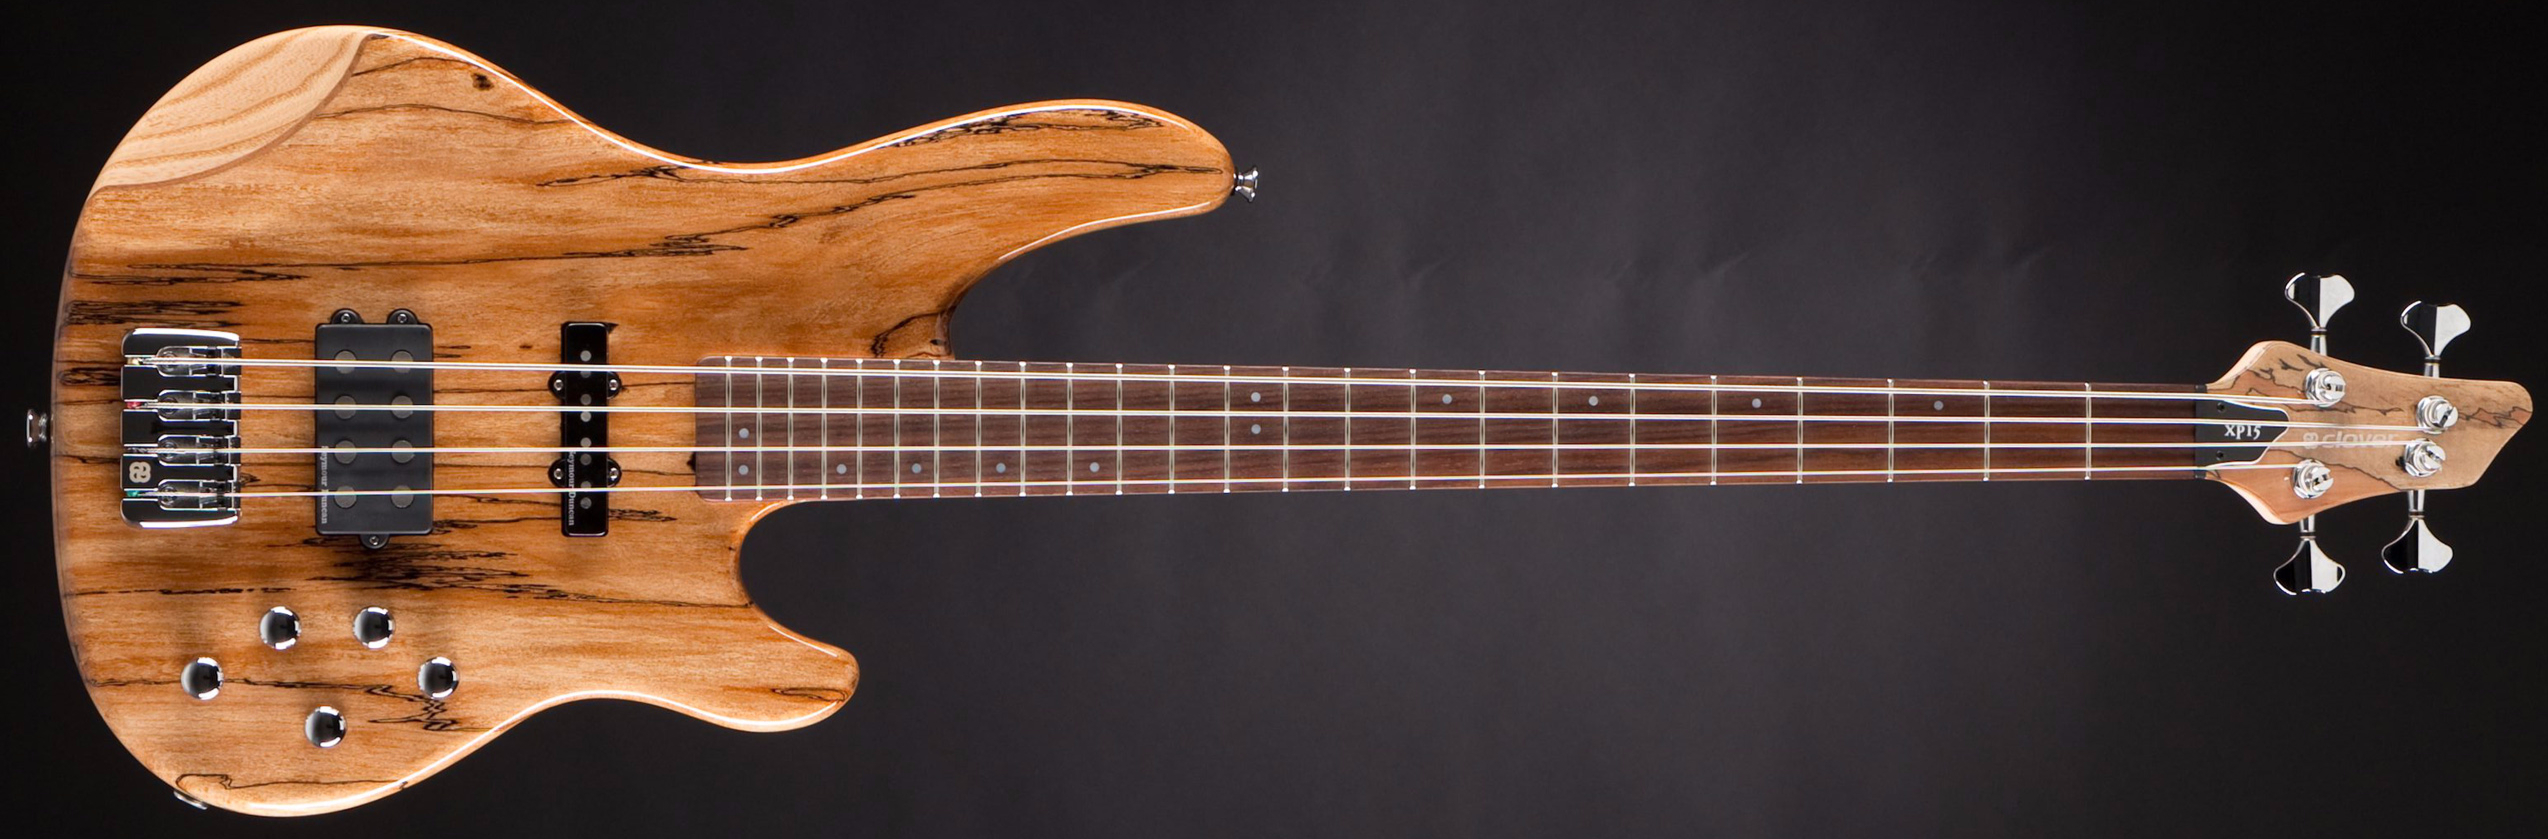 official photos 42275 29af0 Clover Xpression 4 Spalted Maple